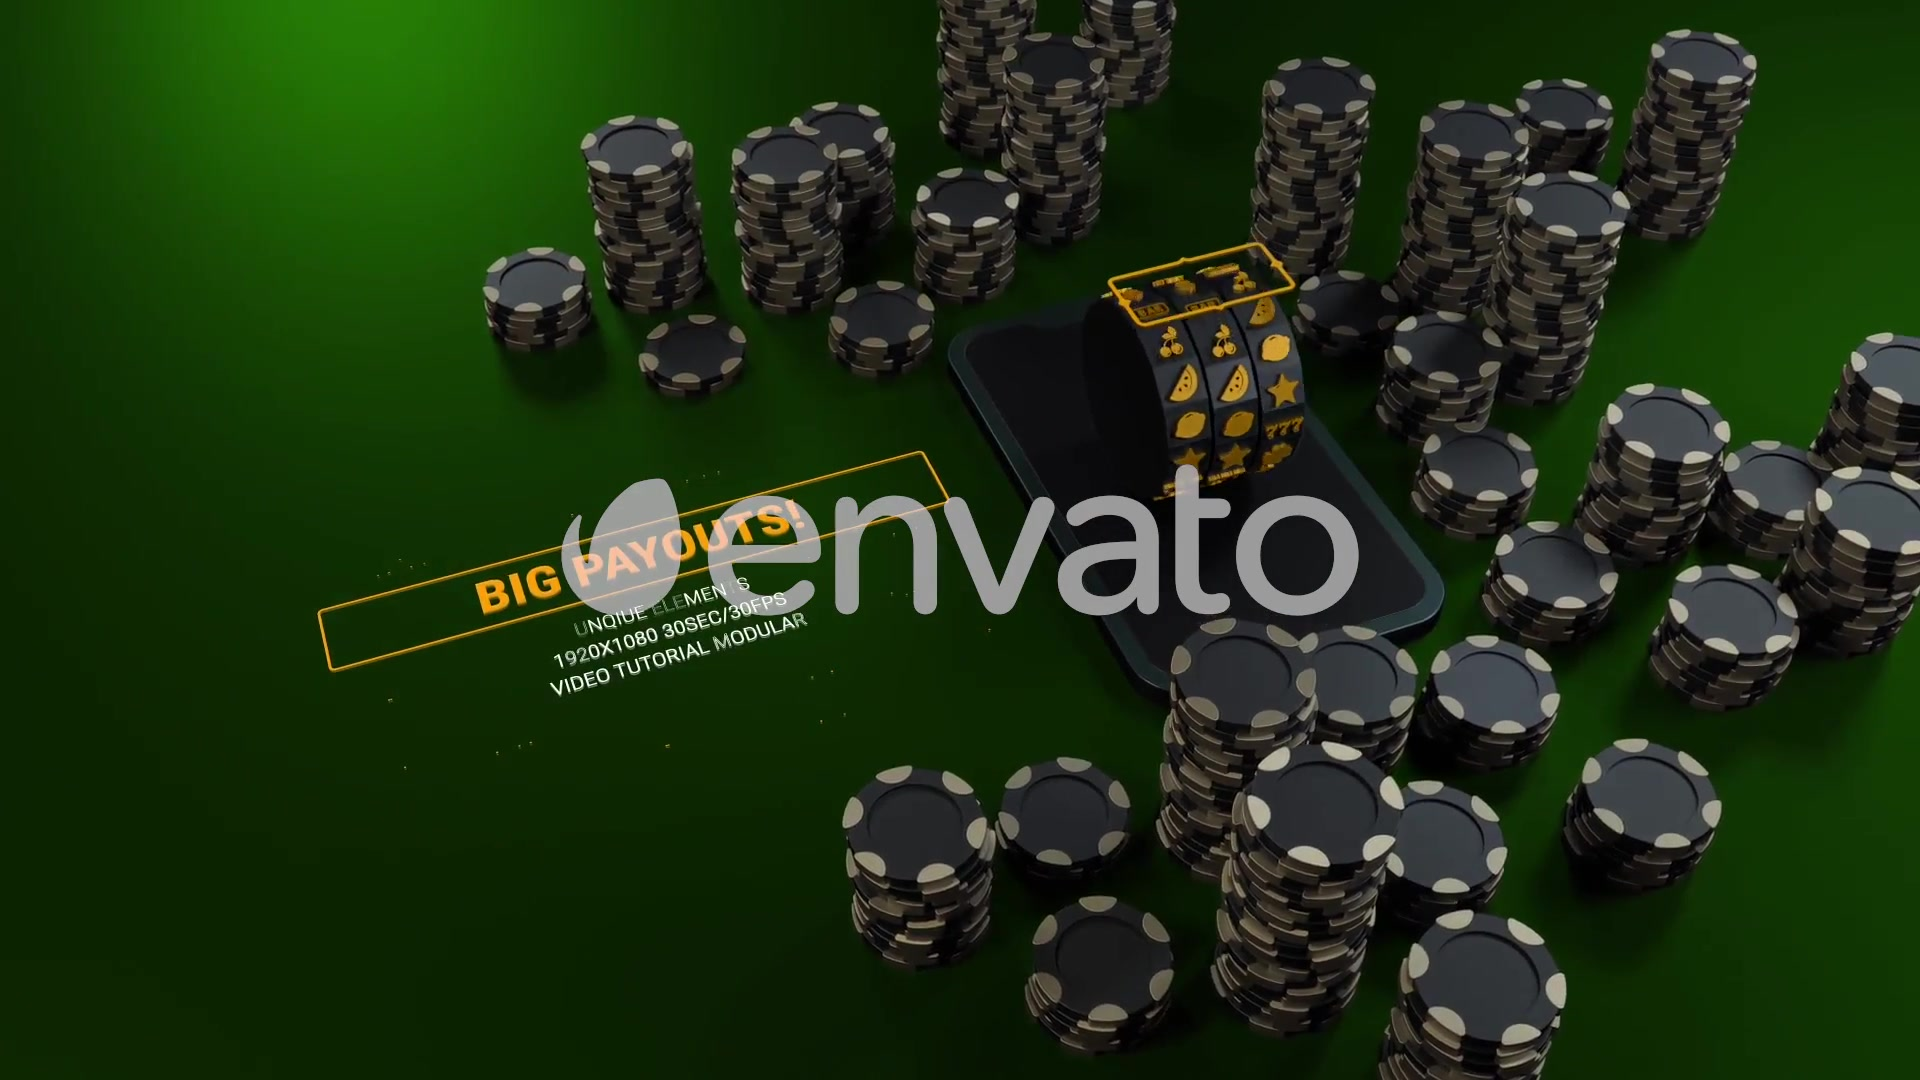 Casino Online Games App/ Poker Champions/ Online Roulette Intro/ Slot Machine/ Money Win/ Smartphone Videohive 25885554 After Effects Image 7